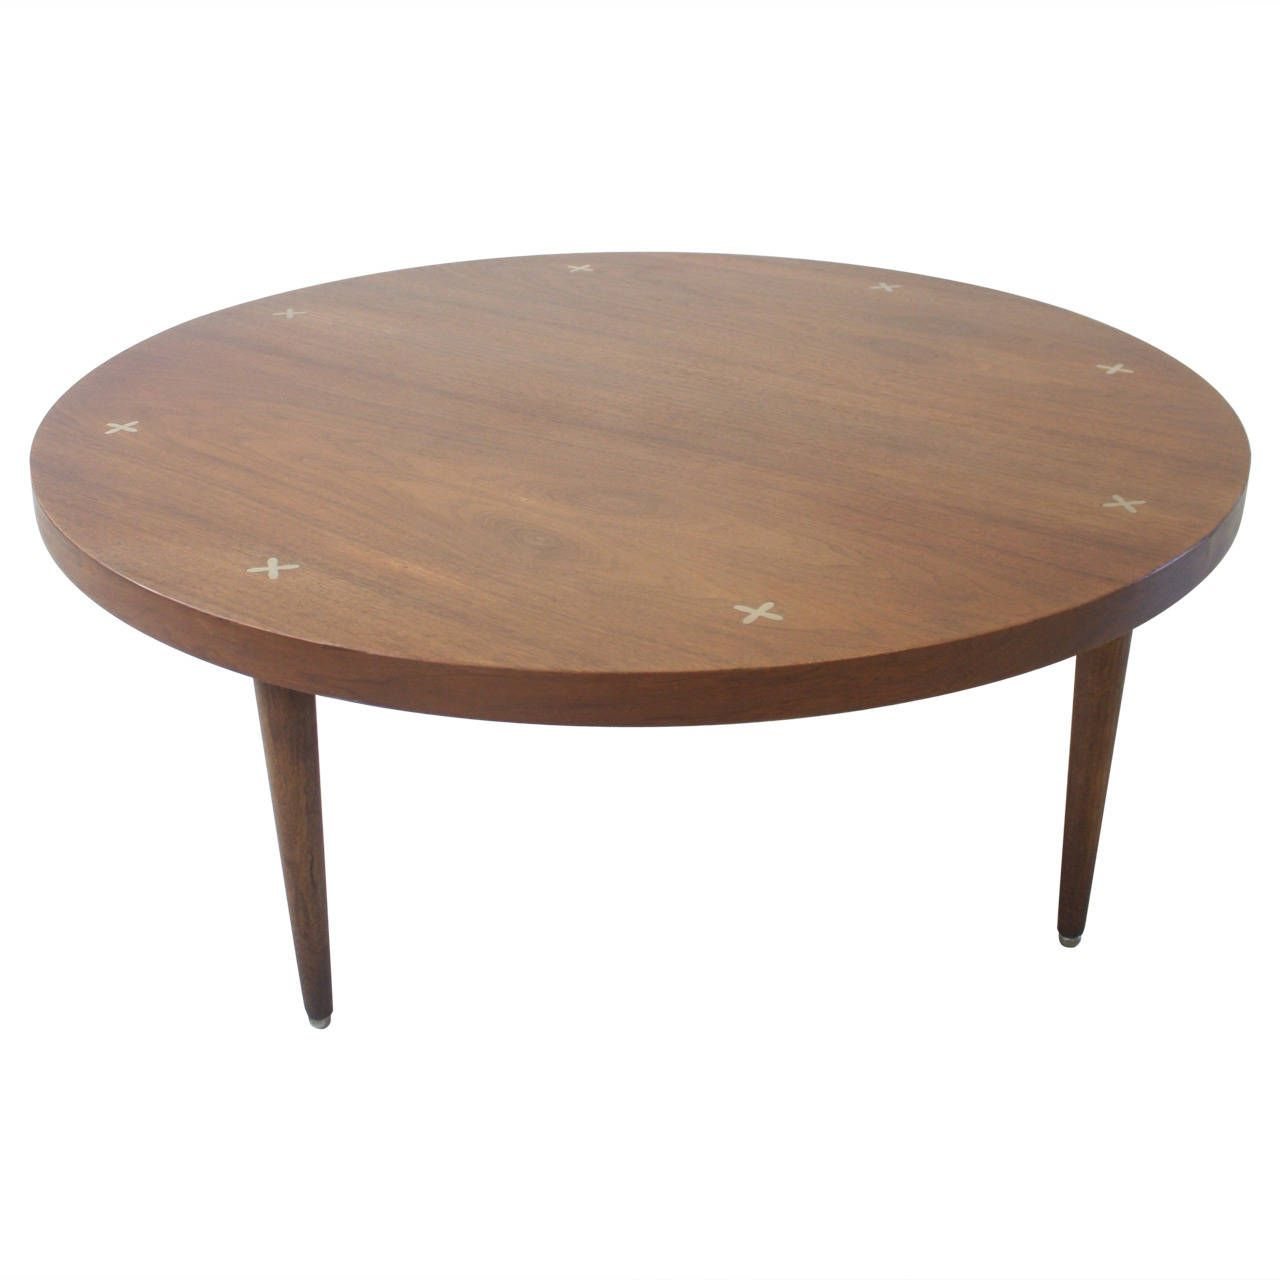 Vintage Walnut Coffee Table By American Of Martinsville From A Unique Collection Antique And Modern Tail Tables At